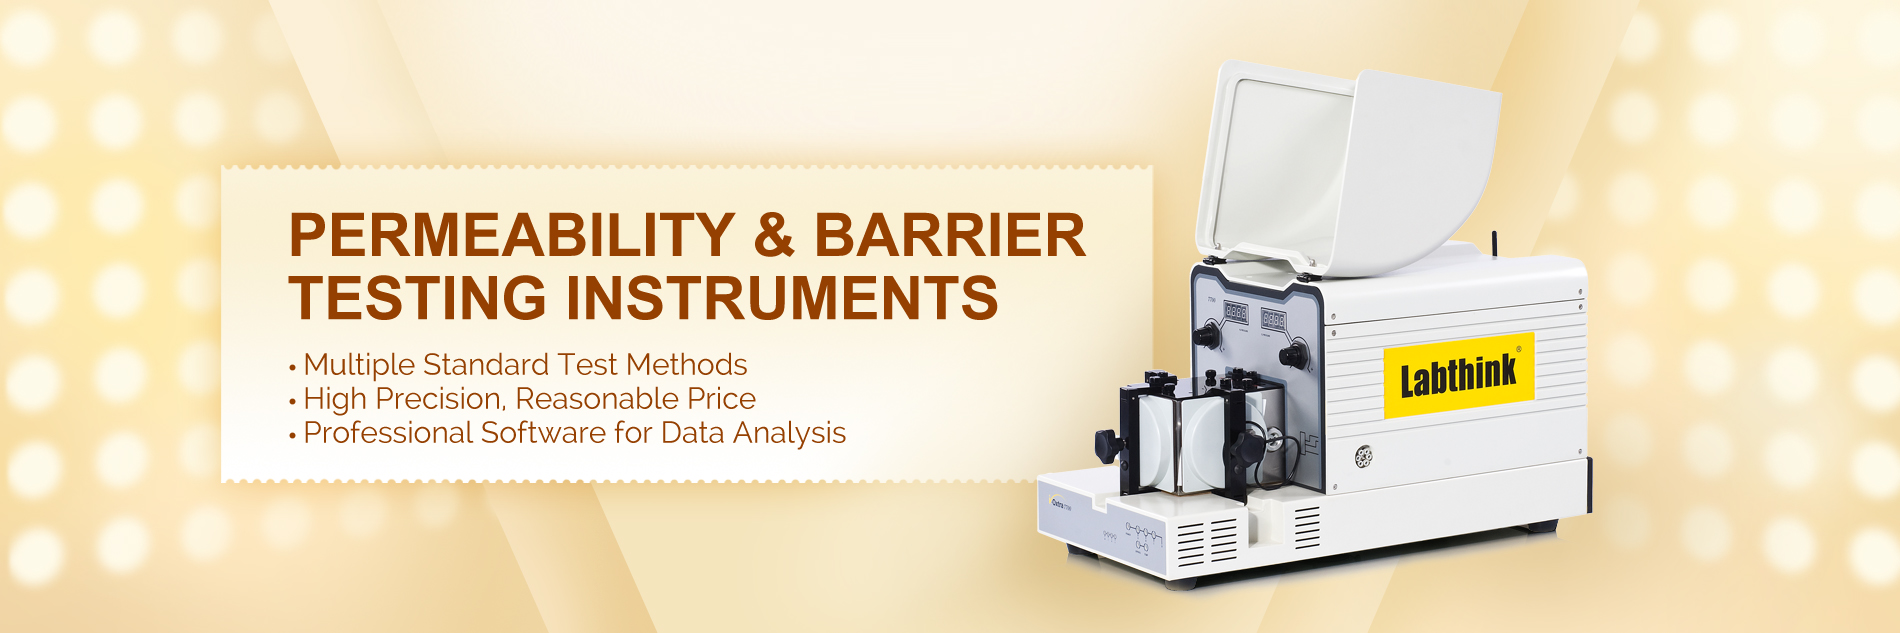 Permeability & Barrier Testing Instruments